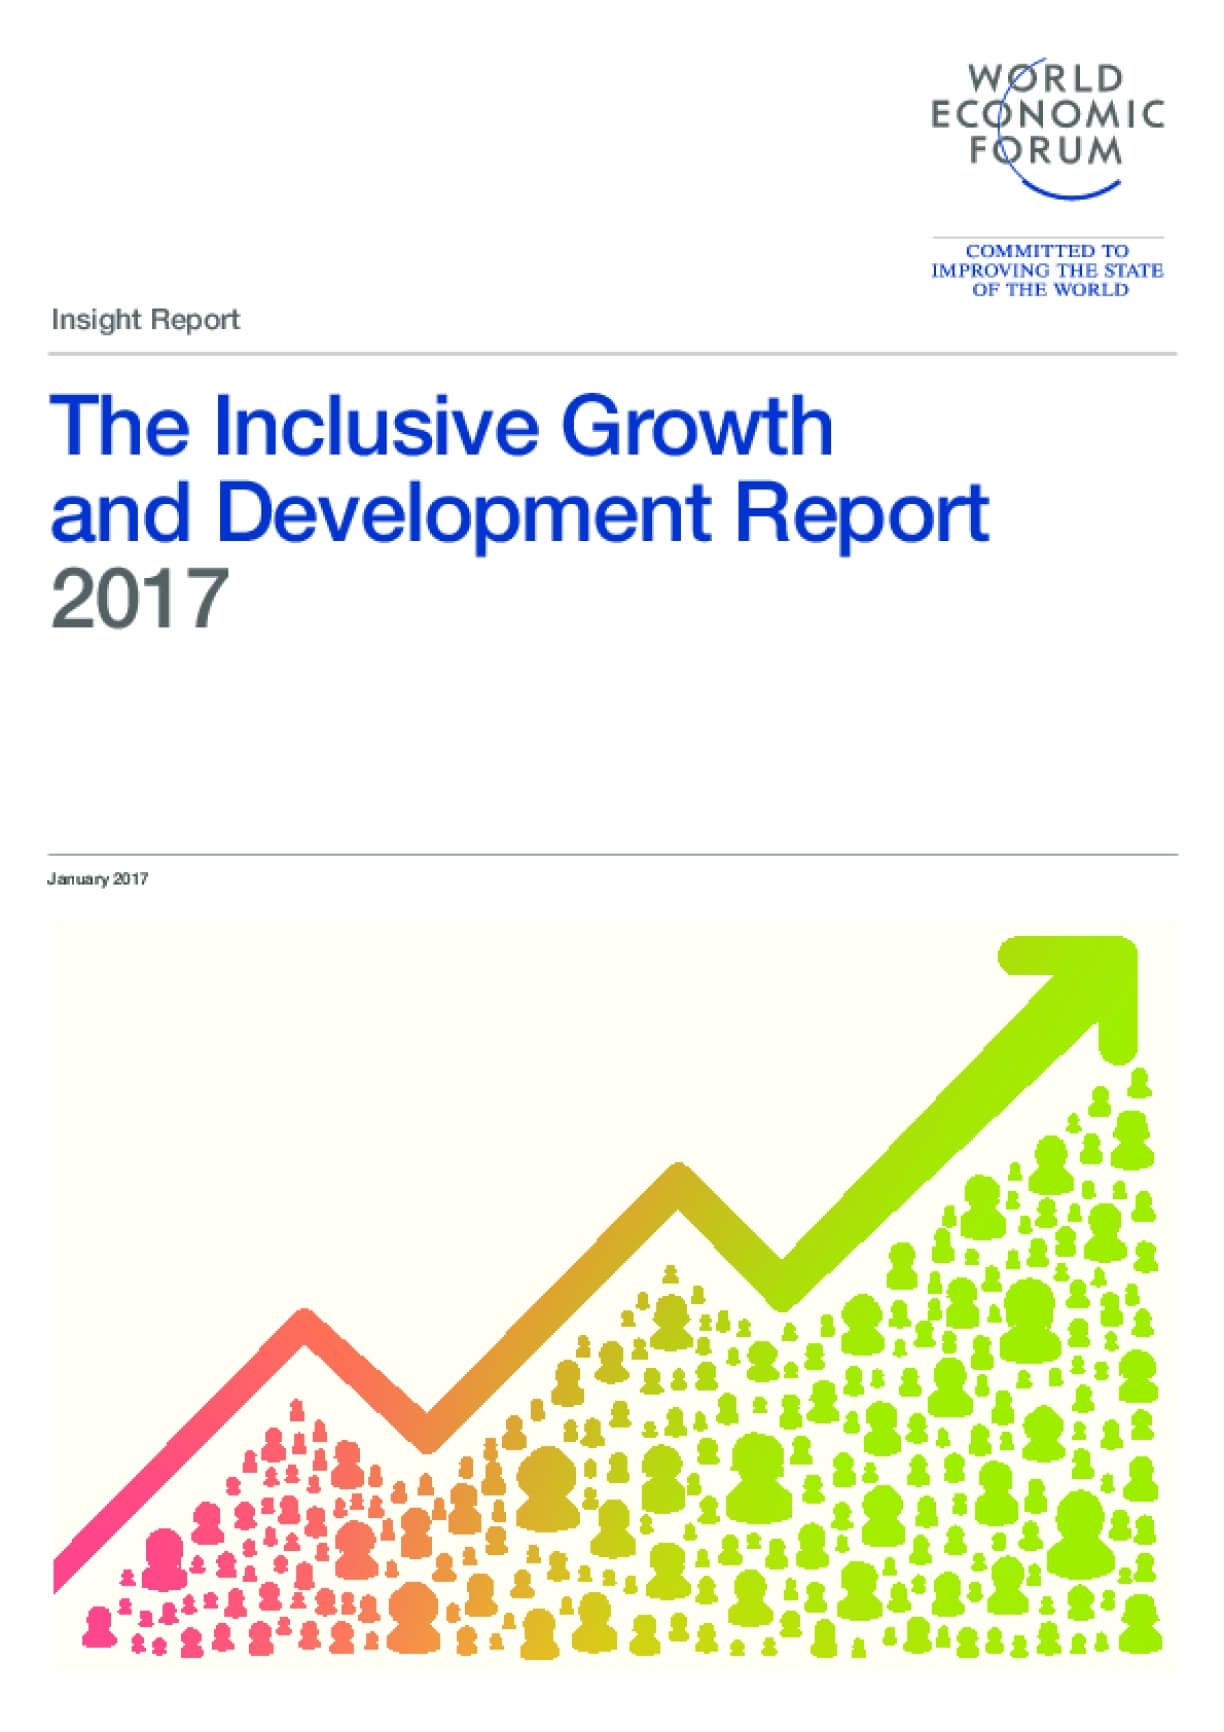 The Inclusive Growth and Development Report 2017